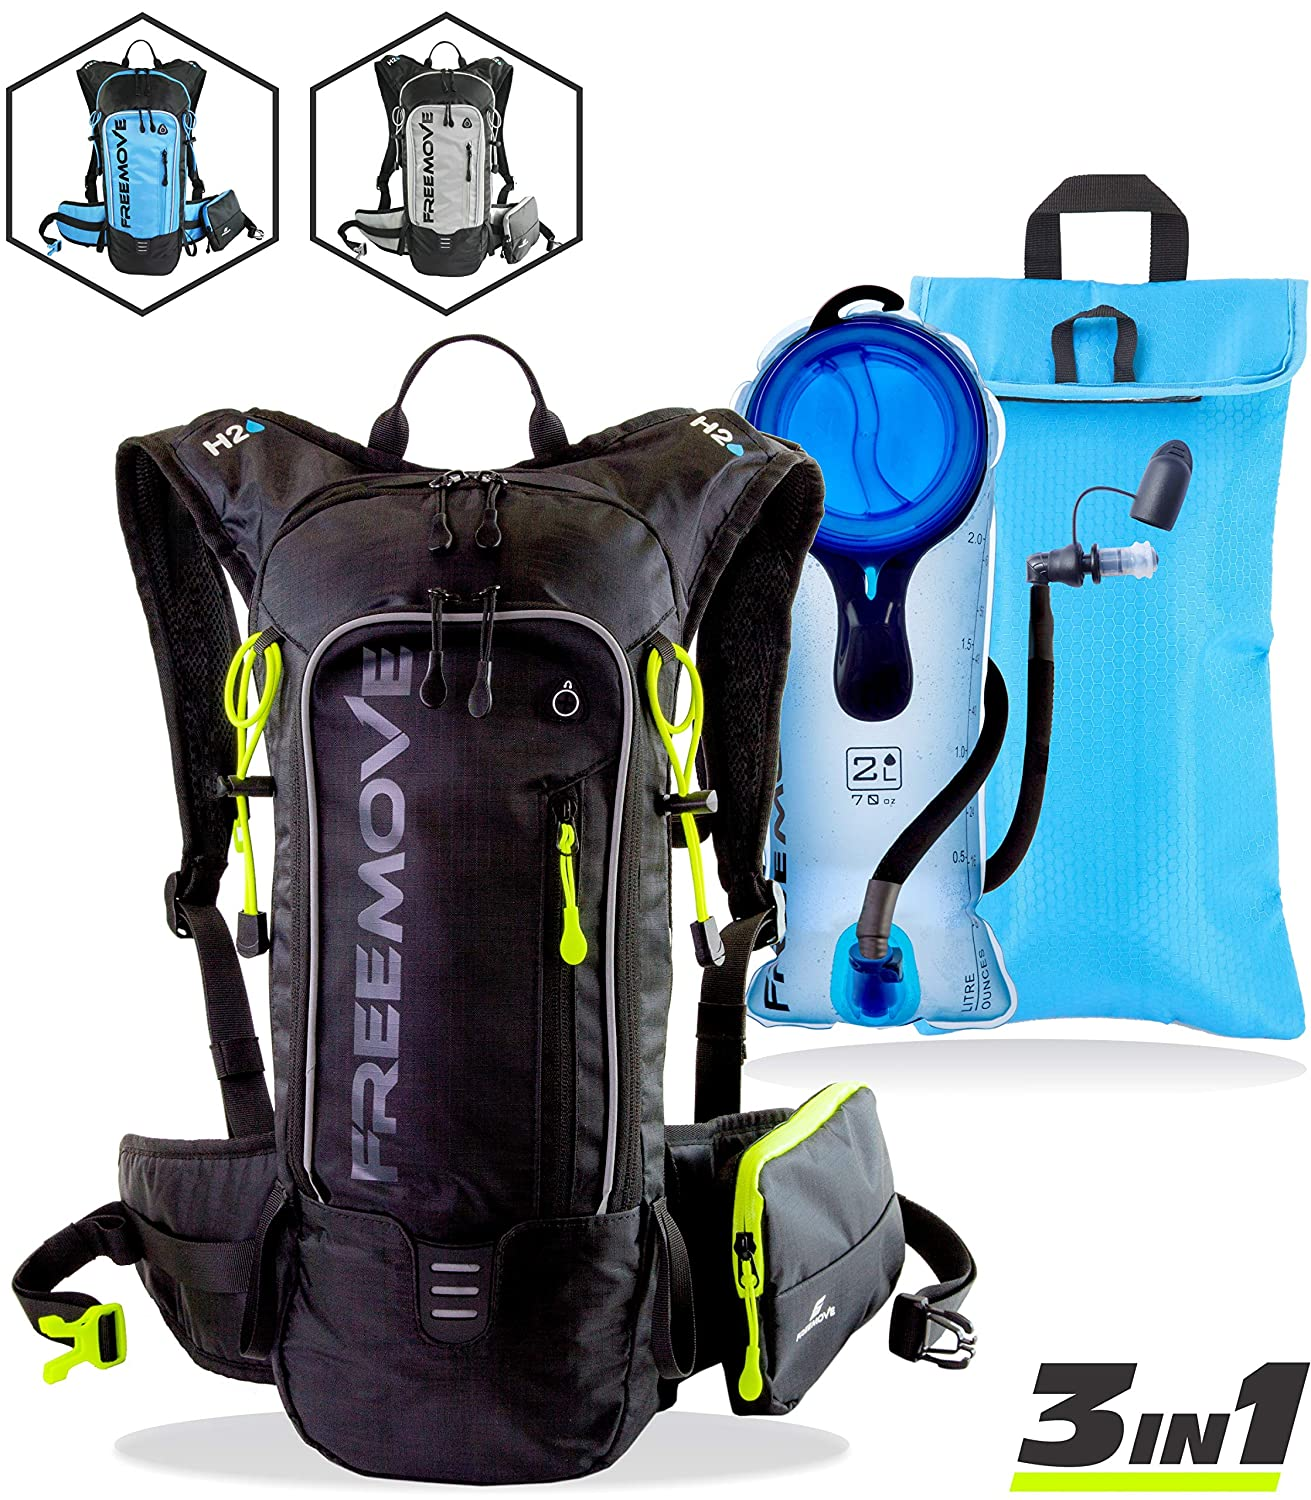 FREEMOVE Hydration Pack Backpack with 2L Water Bladder}